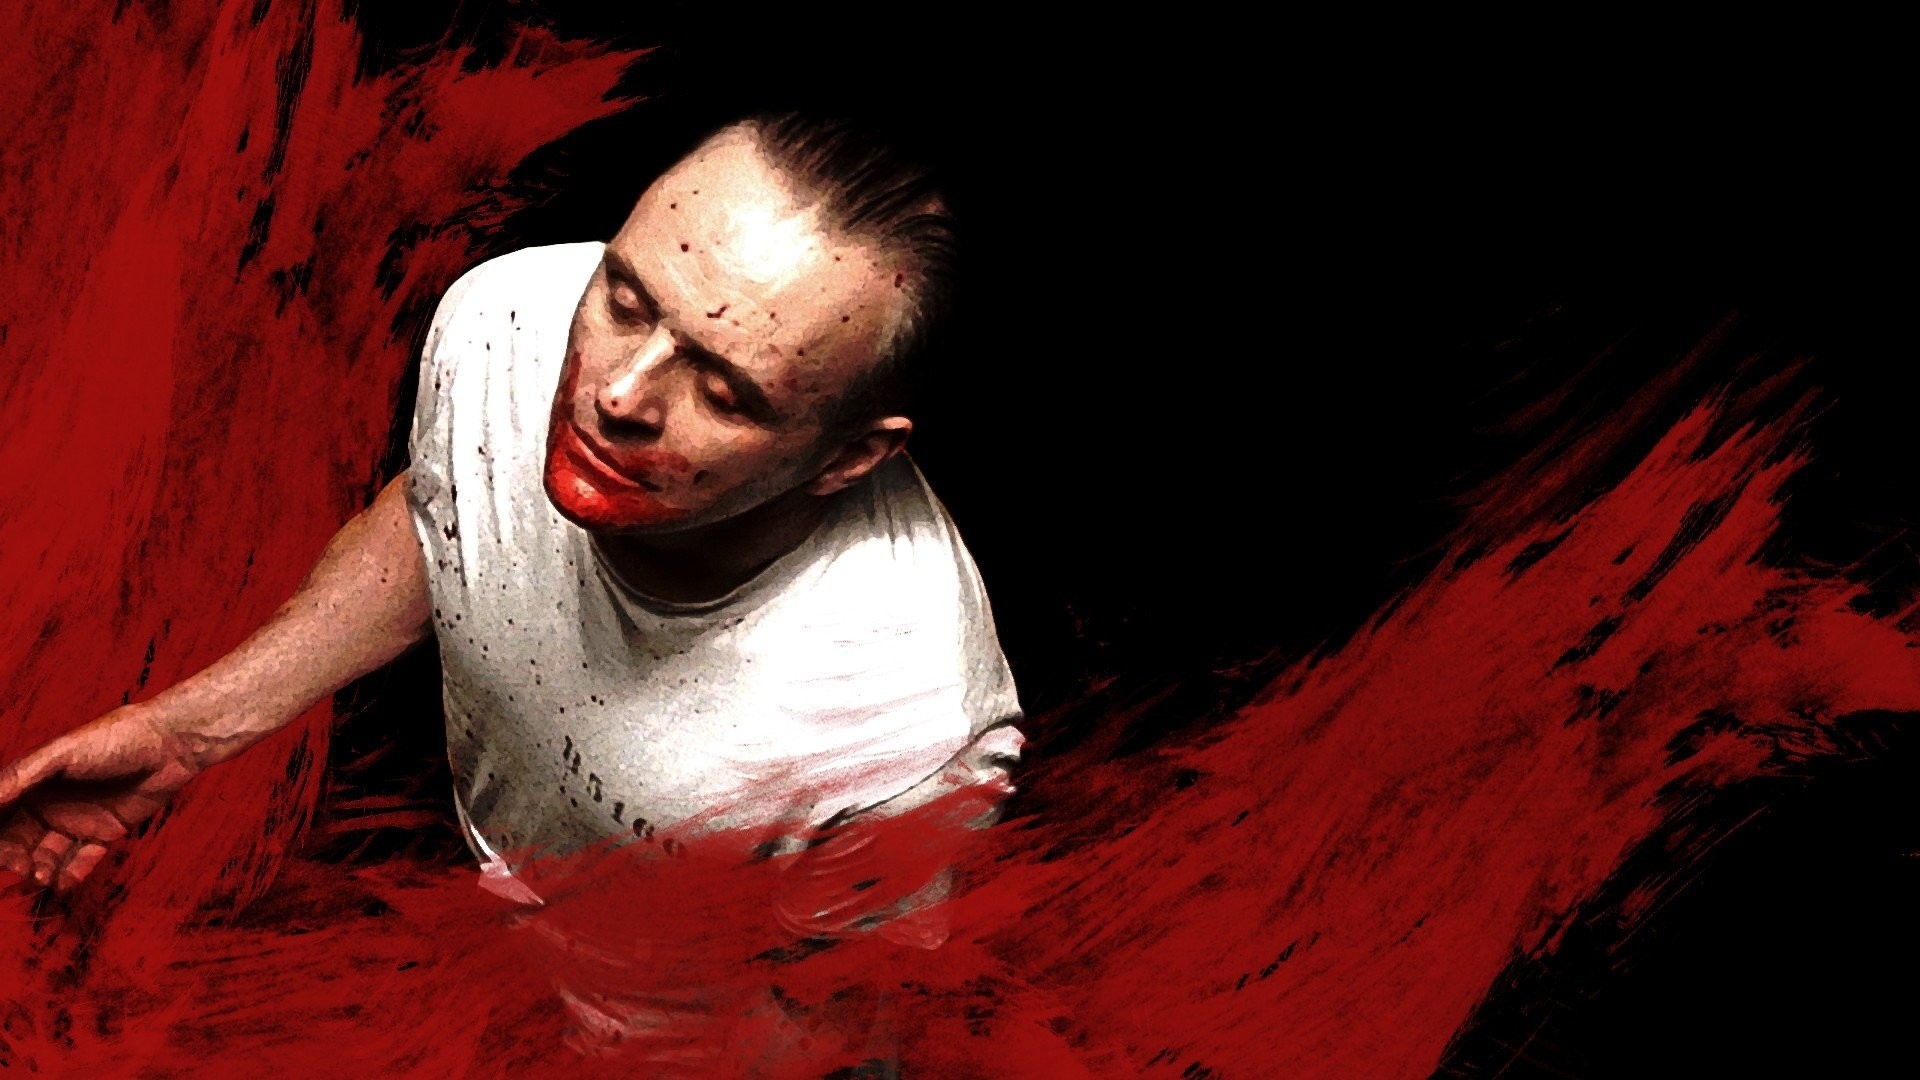 Res: 1920x1080, Anthony Hopkins Hannibal Lecter wallpaper |  | 346249 | WallpaperUP